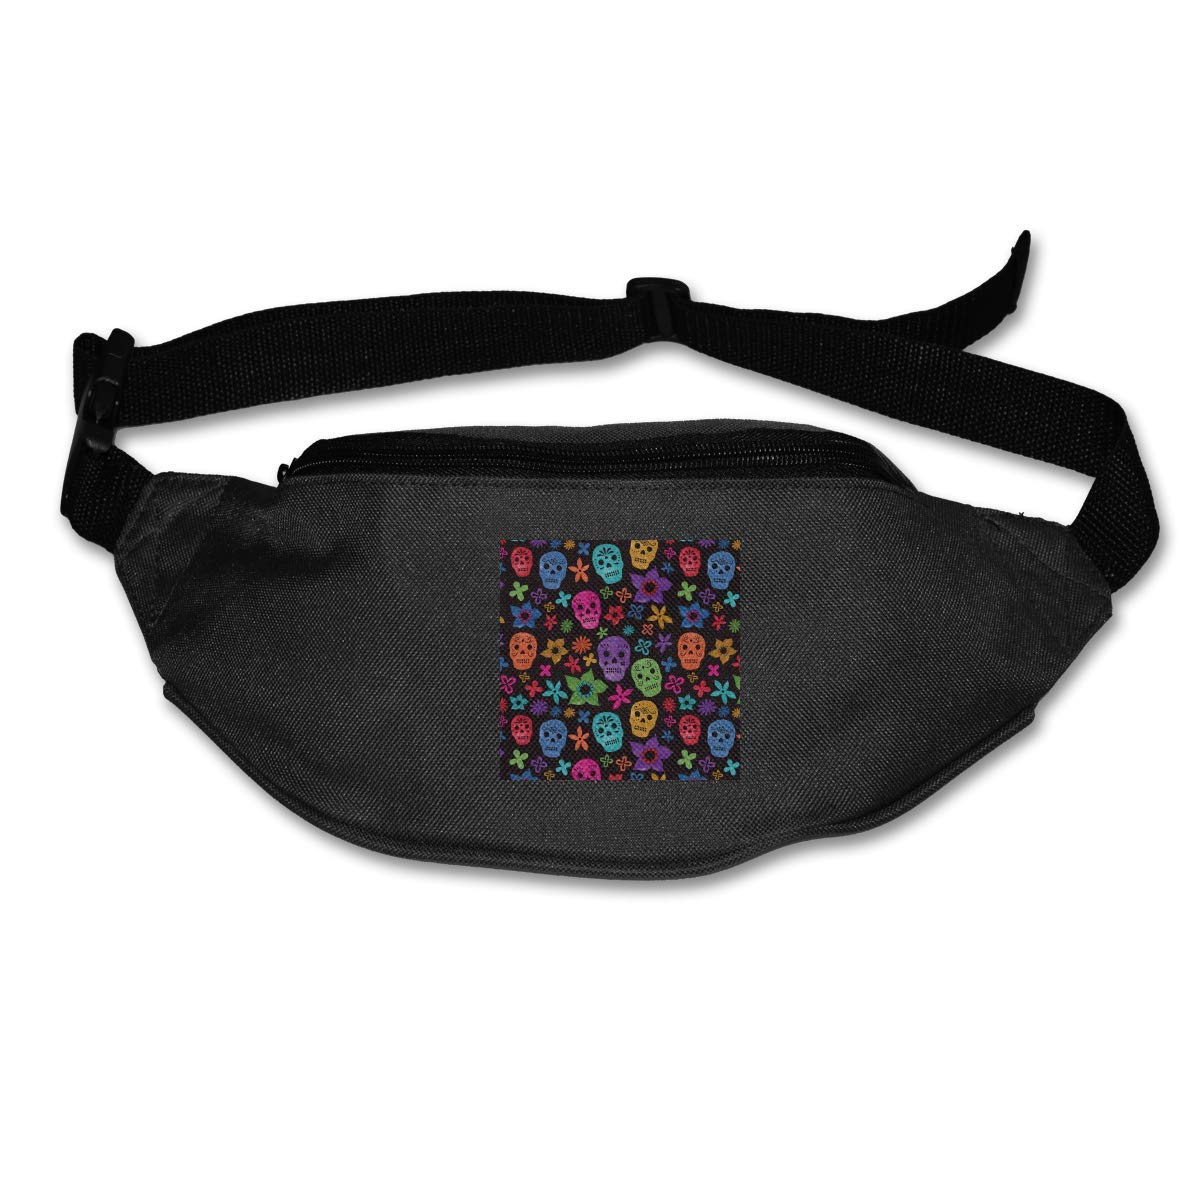 Novelty Colorful Cute Colorful Flower and Skull Canvas Running Waist Pack